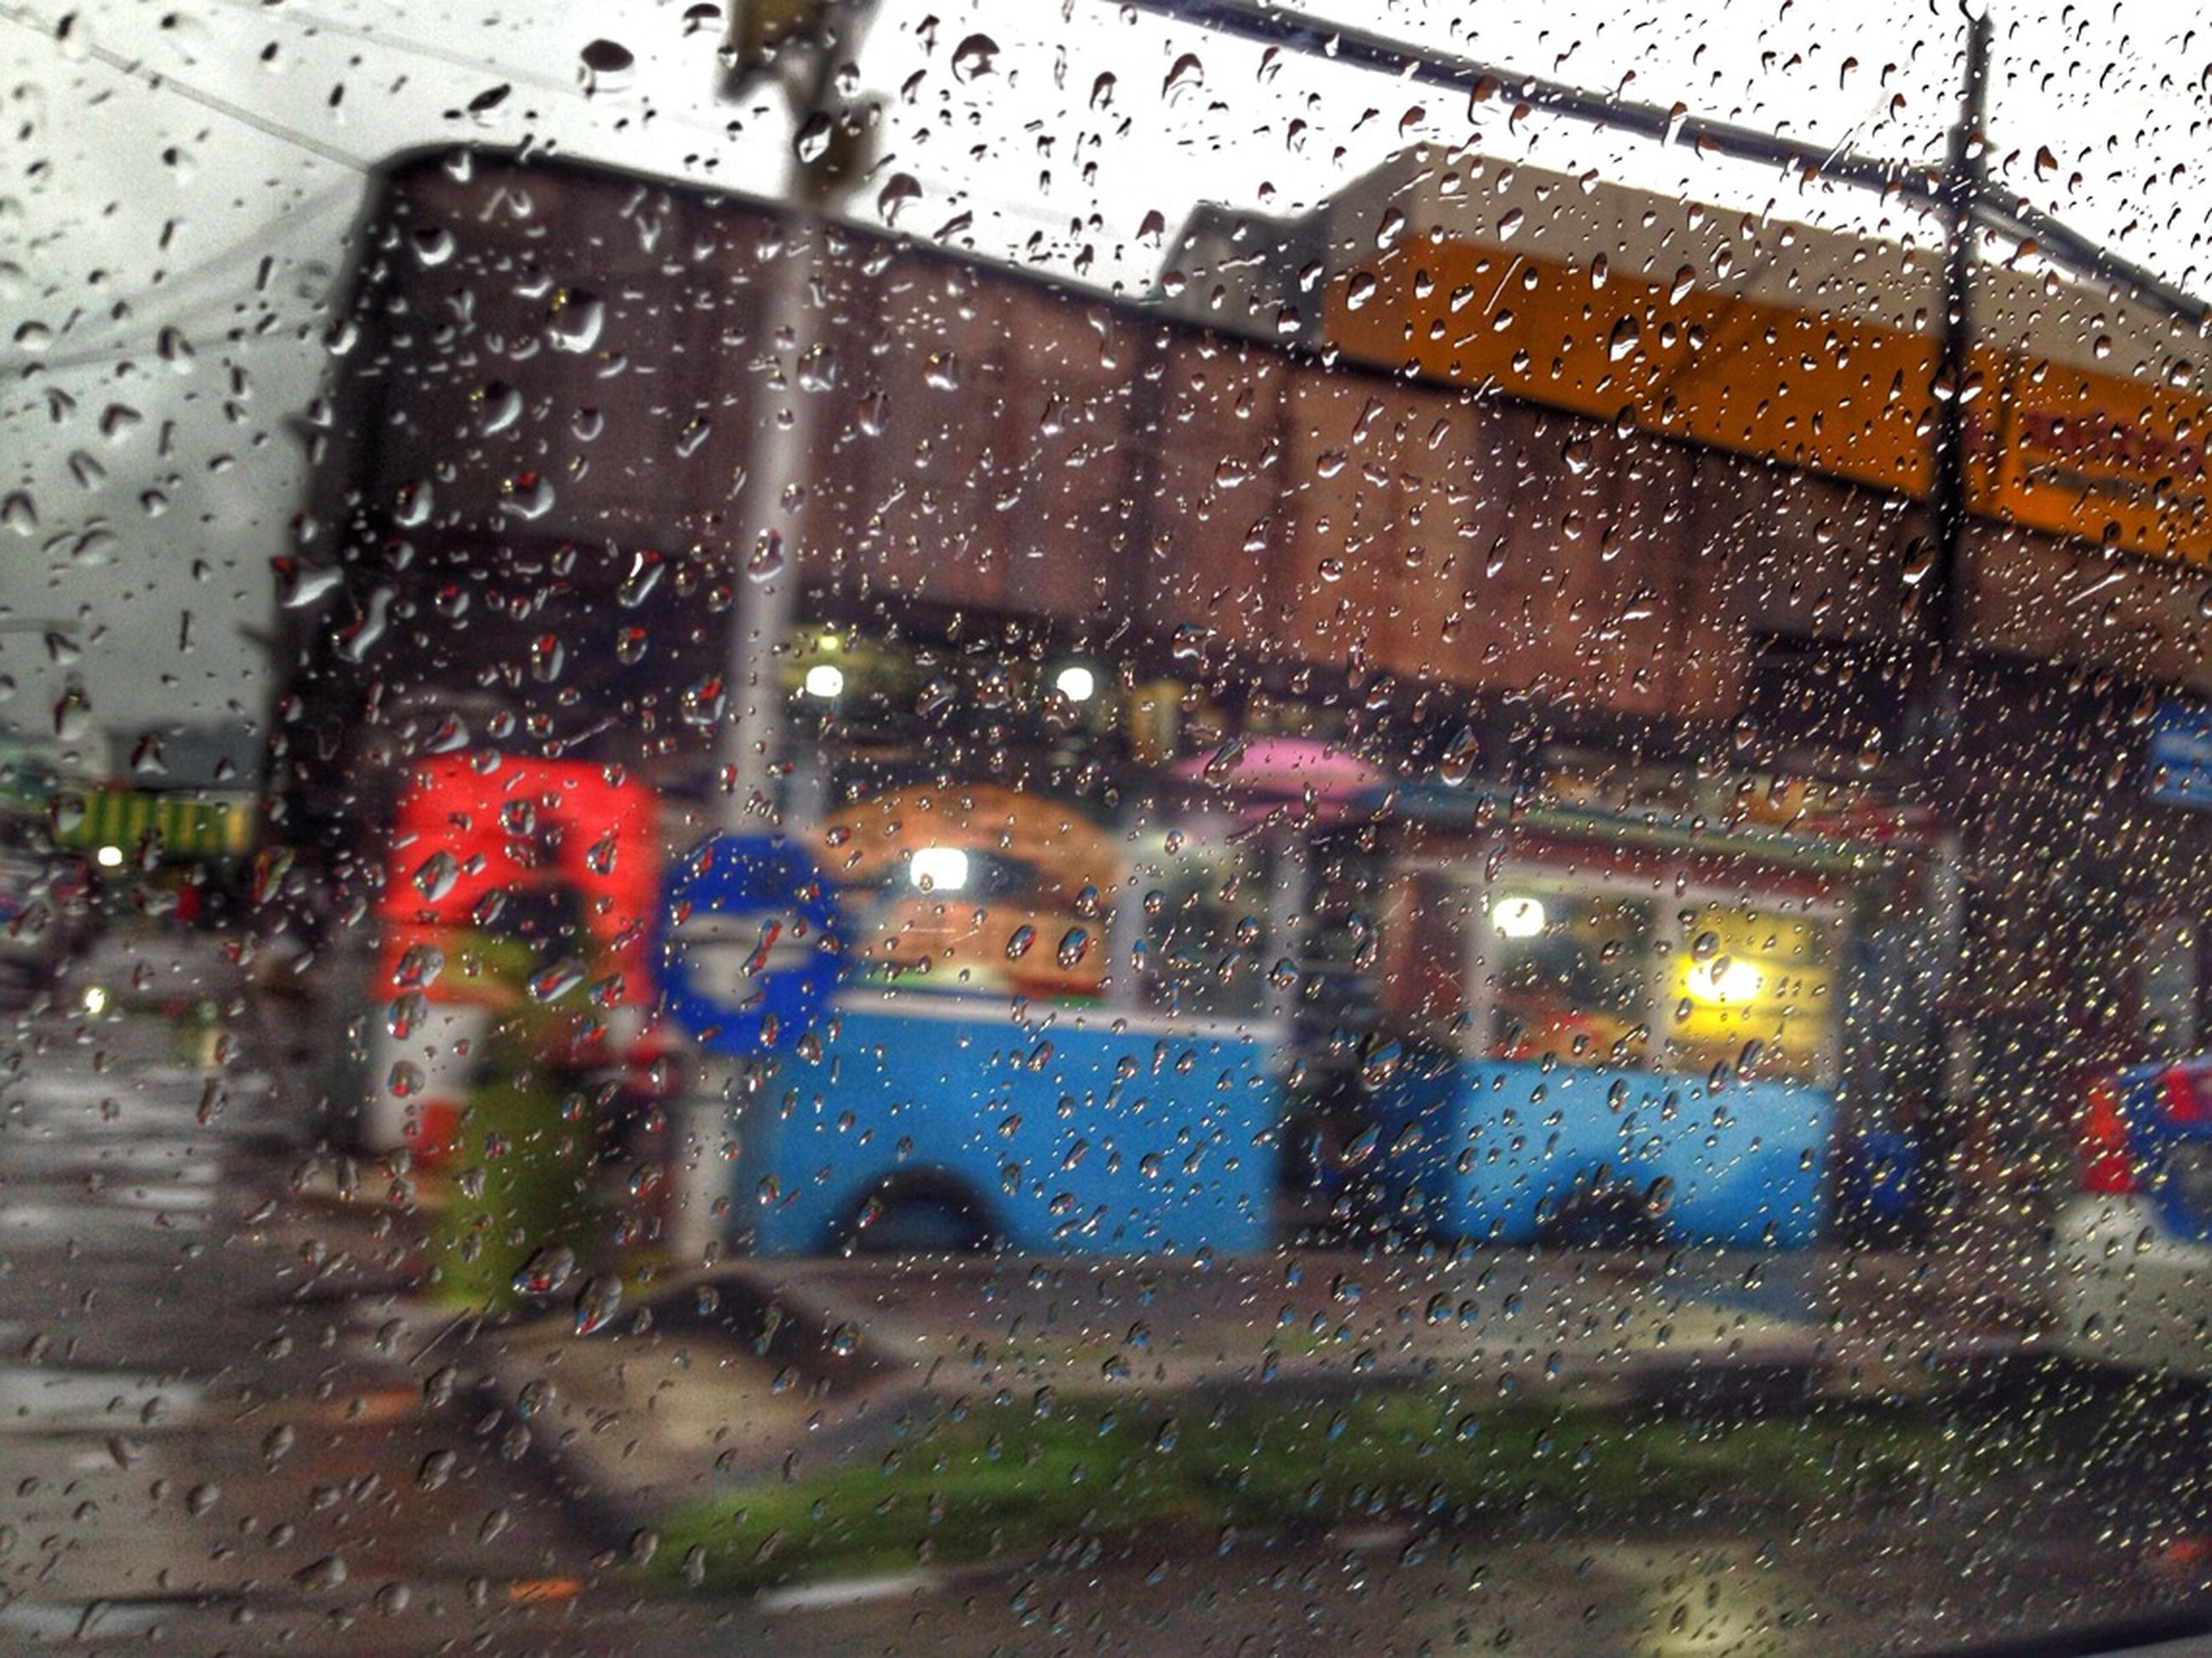 wet, window, rain, drop, transparent, transportation, glass - material, car, land vehicle, mode of transport, season, indoors, weather, water, raindrop, vehicle interior, windshield, street, road, car interior